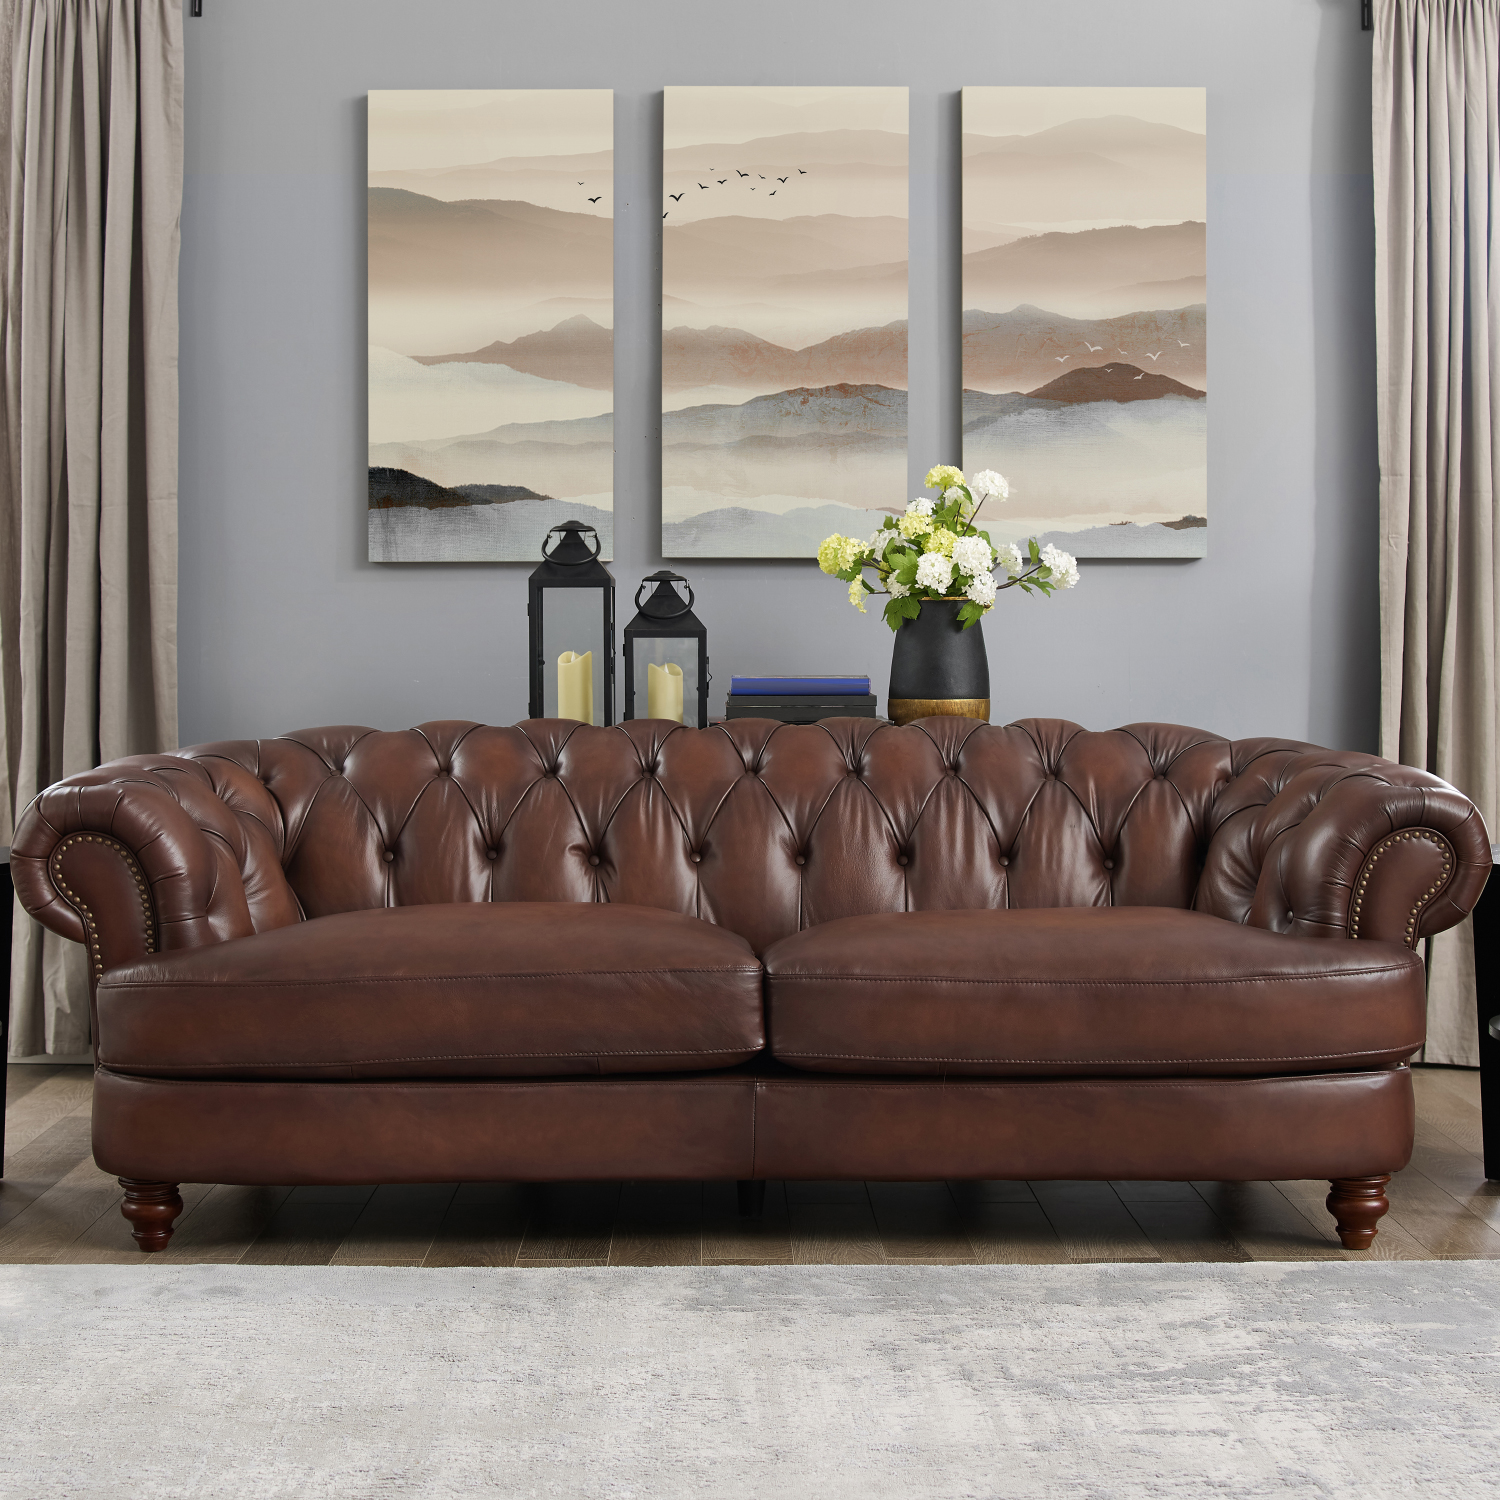 Brown Real Leather Couch Melton Leather Sofa In Diamond Tufted Dark Brown W Nailheads By Amax Leather